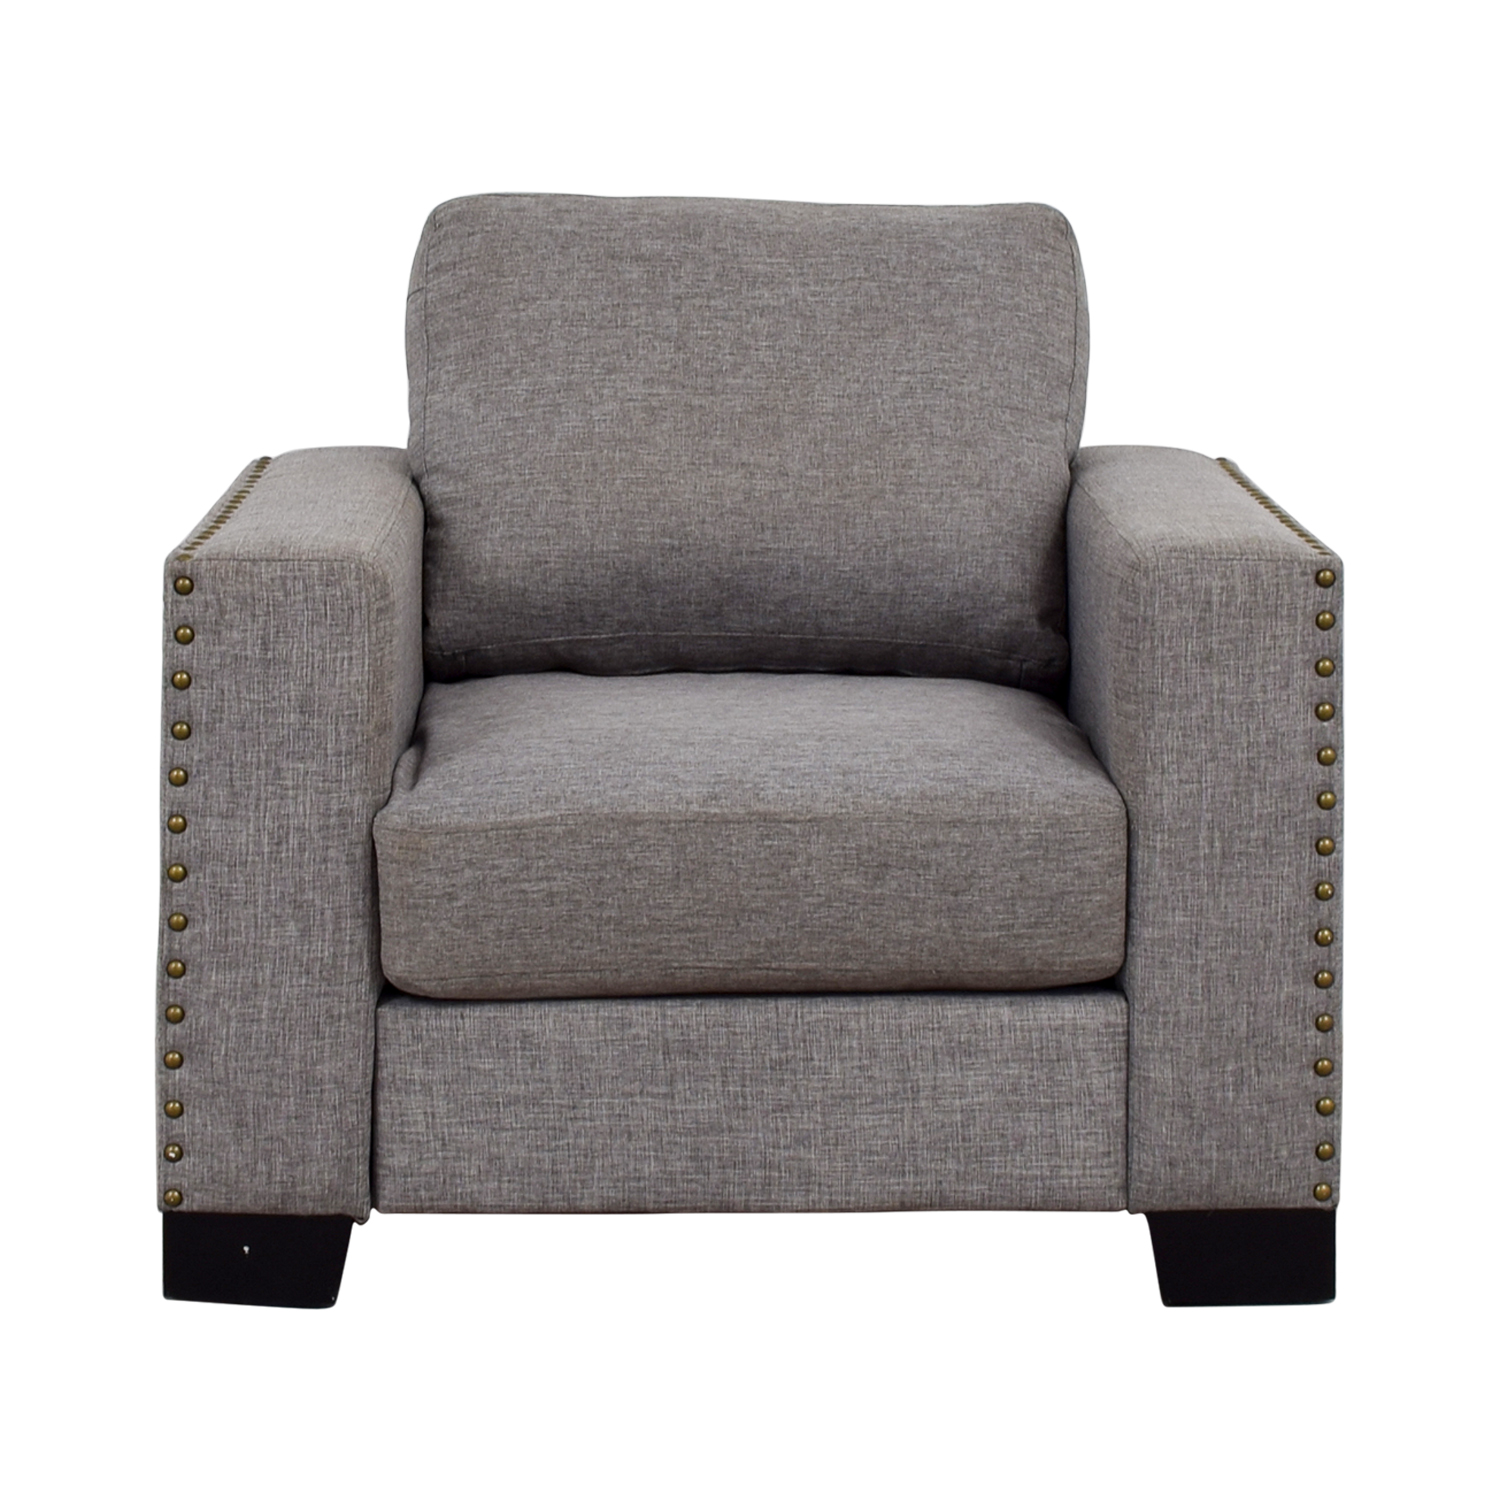 67% OFF   Inspire Q Inspire Q Classic Grey Nailhead Track Arm Accent Chair  / Chairs